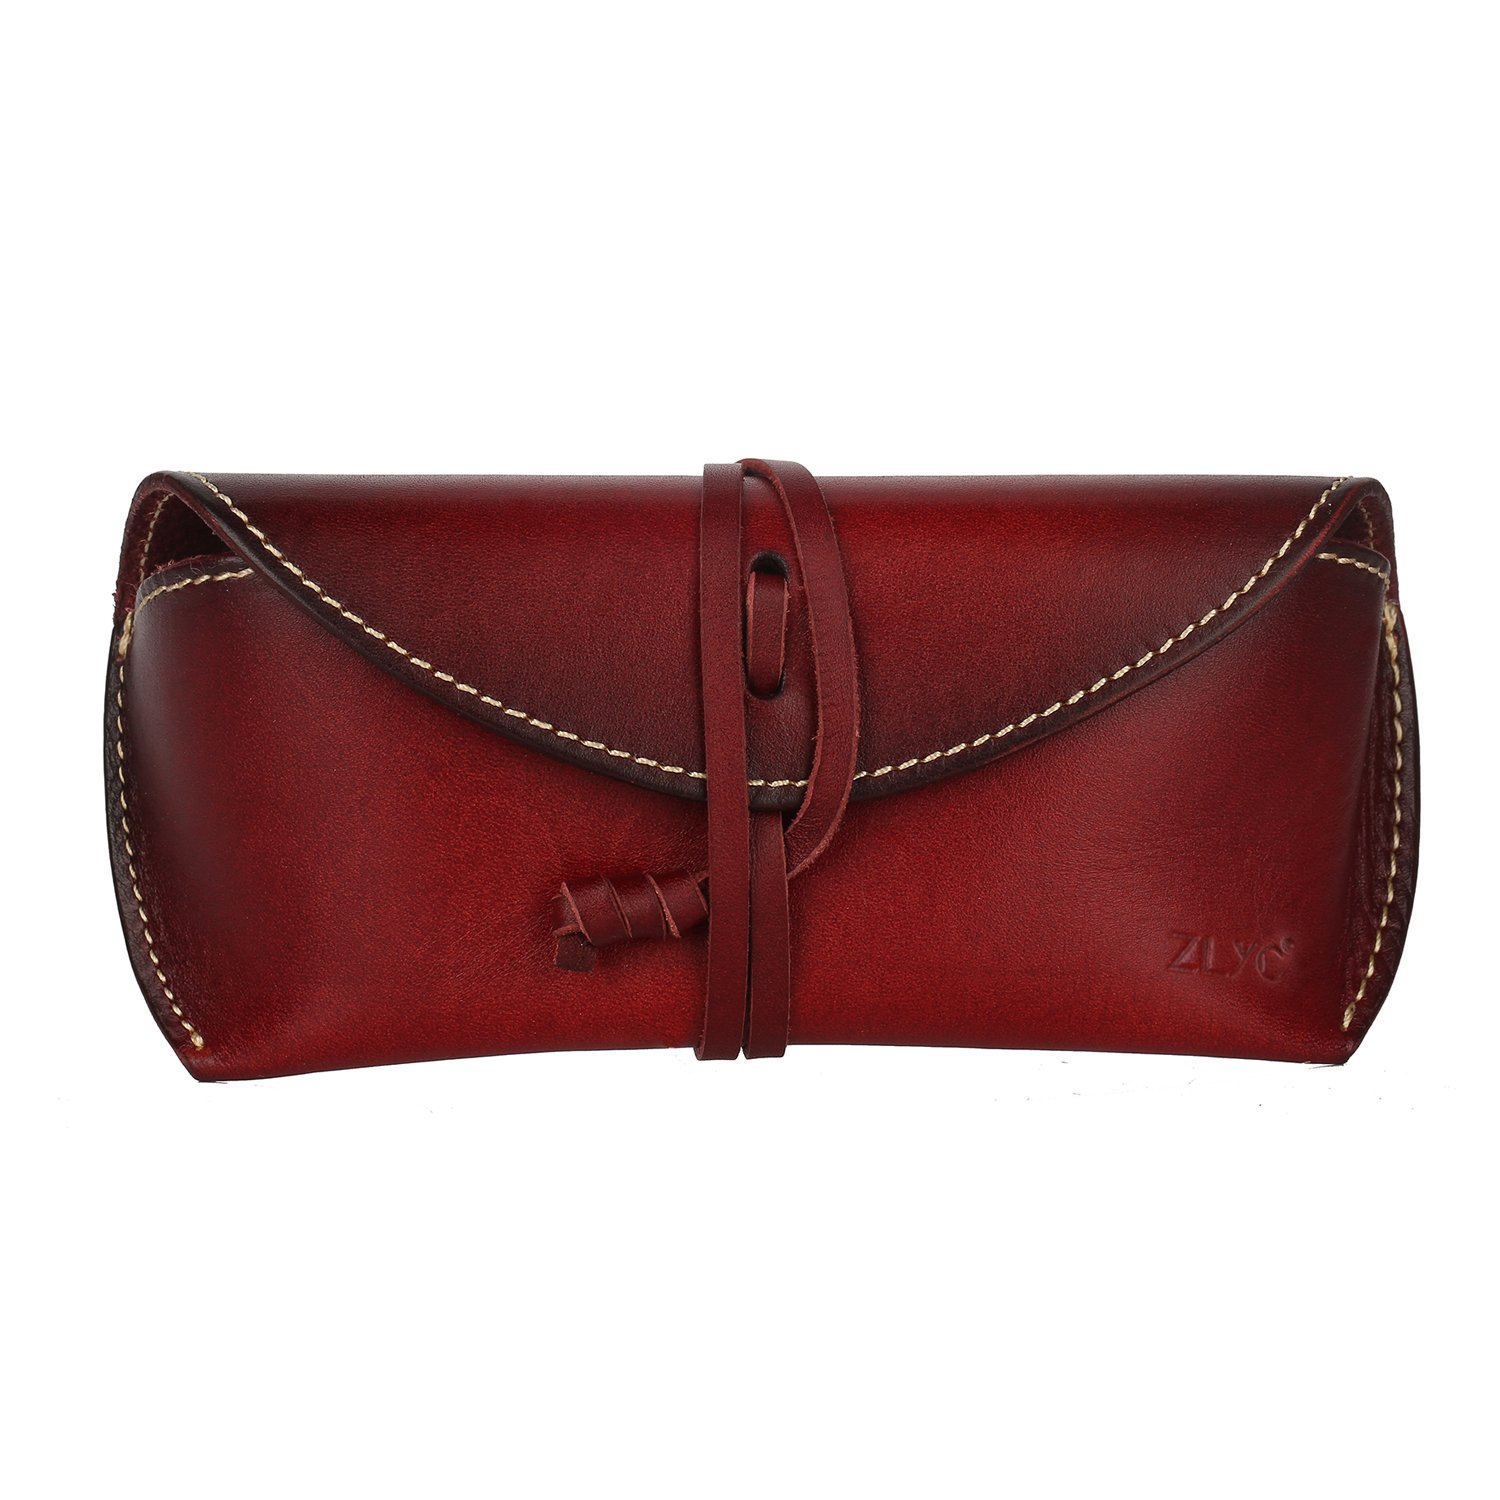 ZLYC Vegetable Tanned Leather Belt Closure Hard Eyeglass Case Sunglasses Holder, Dark Red JC-YJ-ZM-9091C-DR_CA